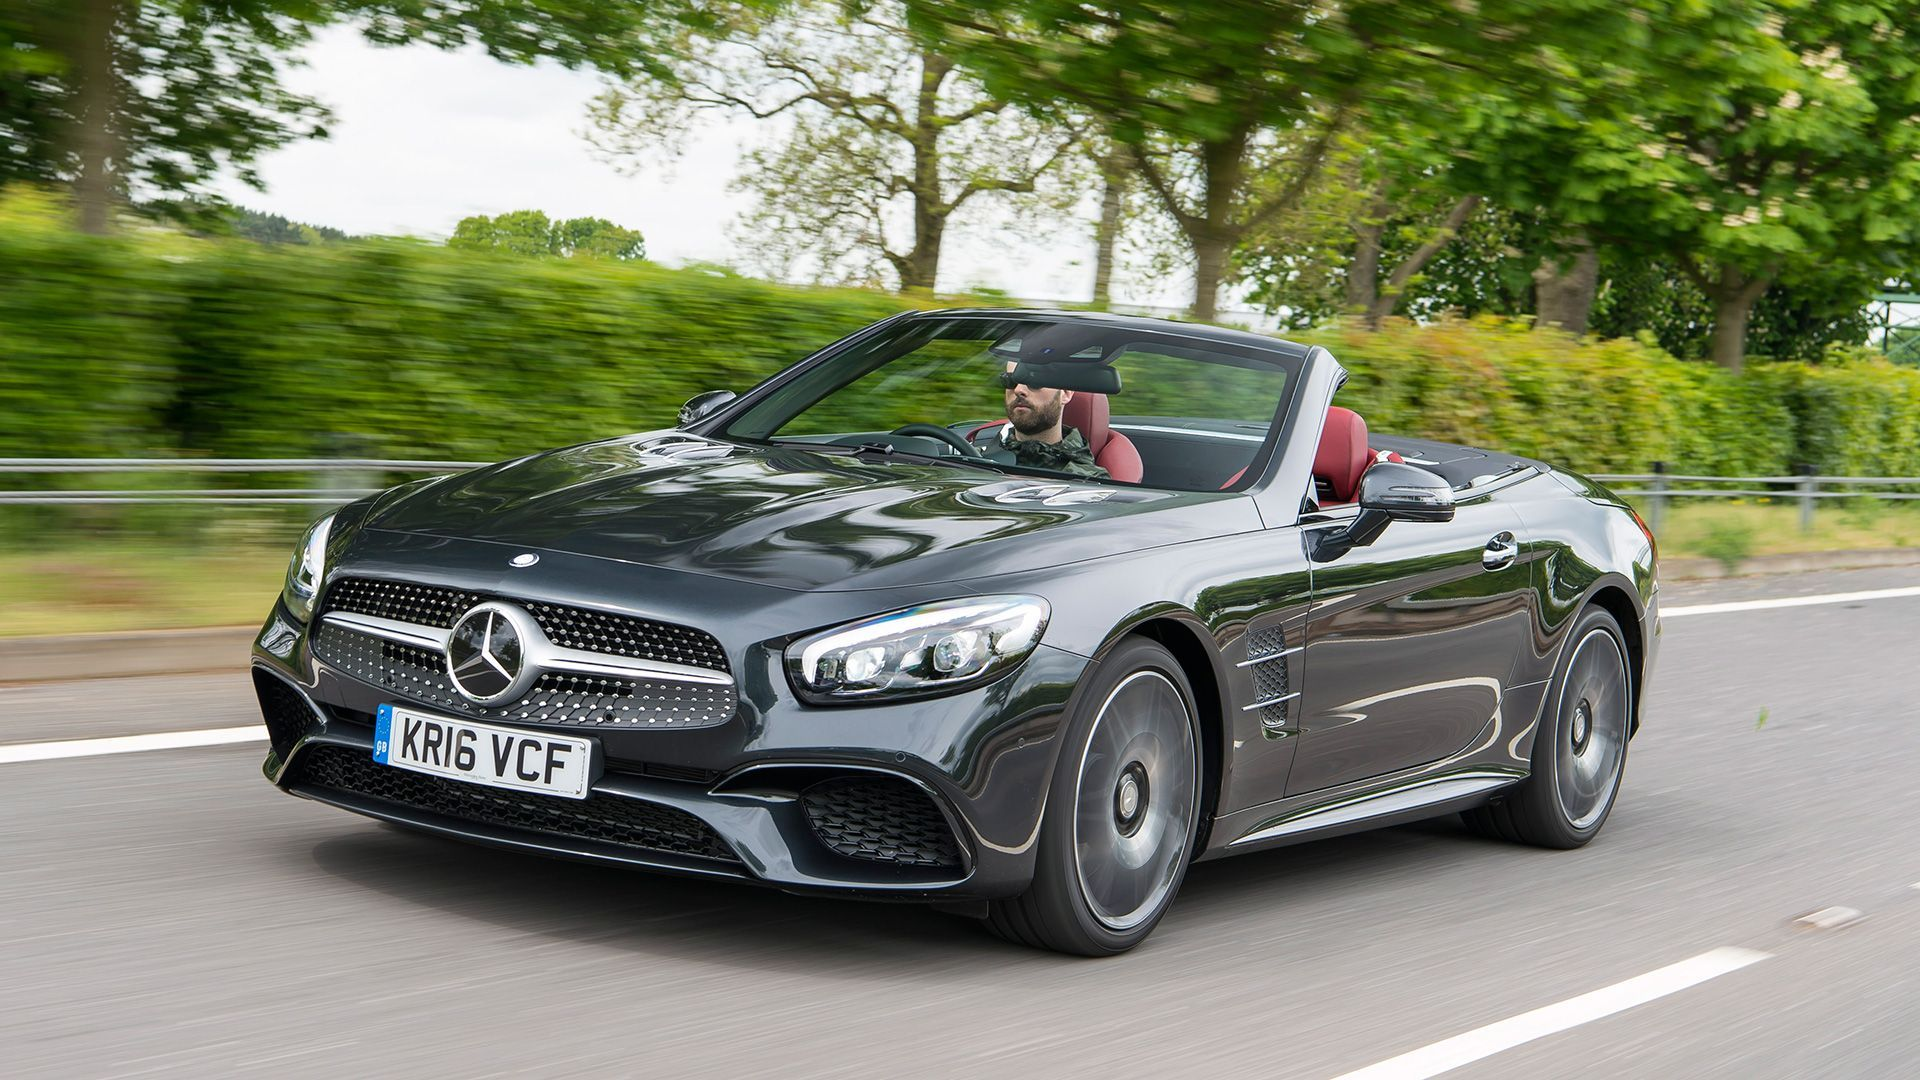 Mercedes-Benz SL Class BlueEFFICIENCY image